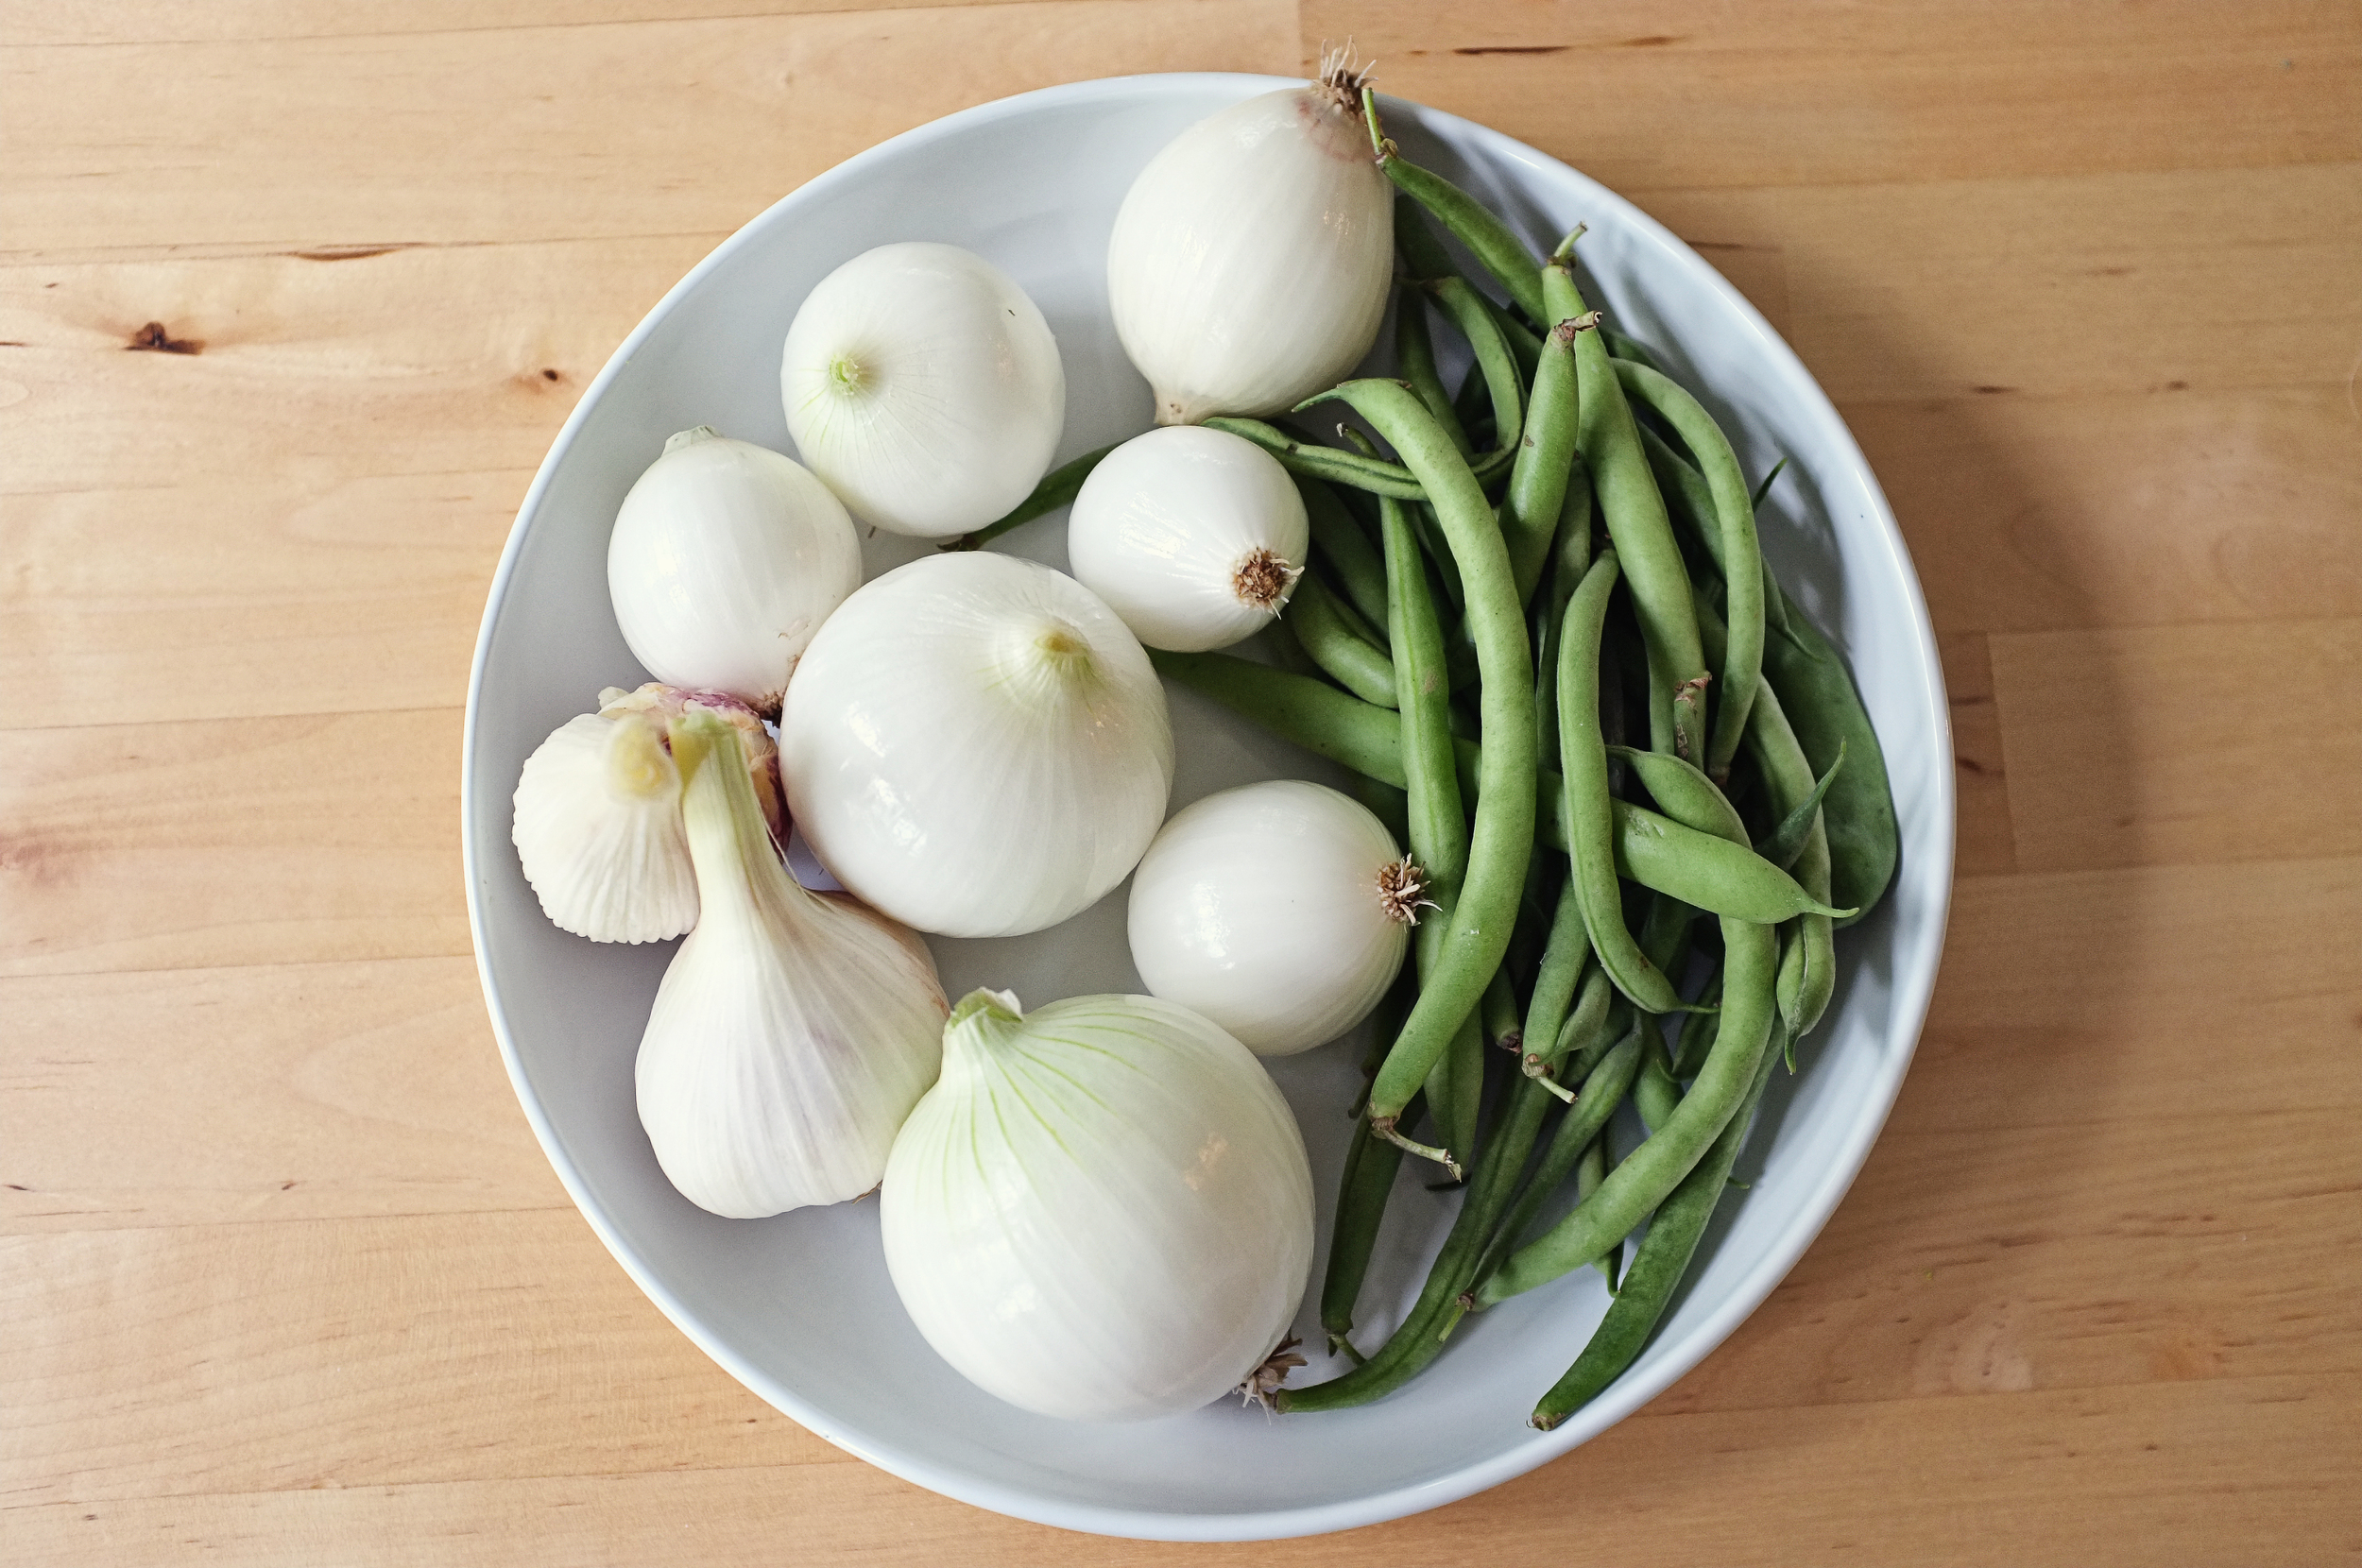 Garlic, onions, and green beans